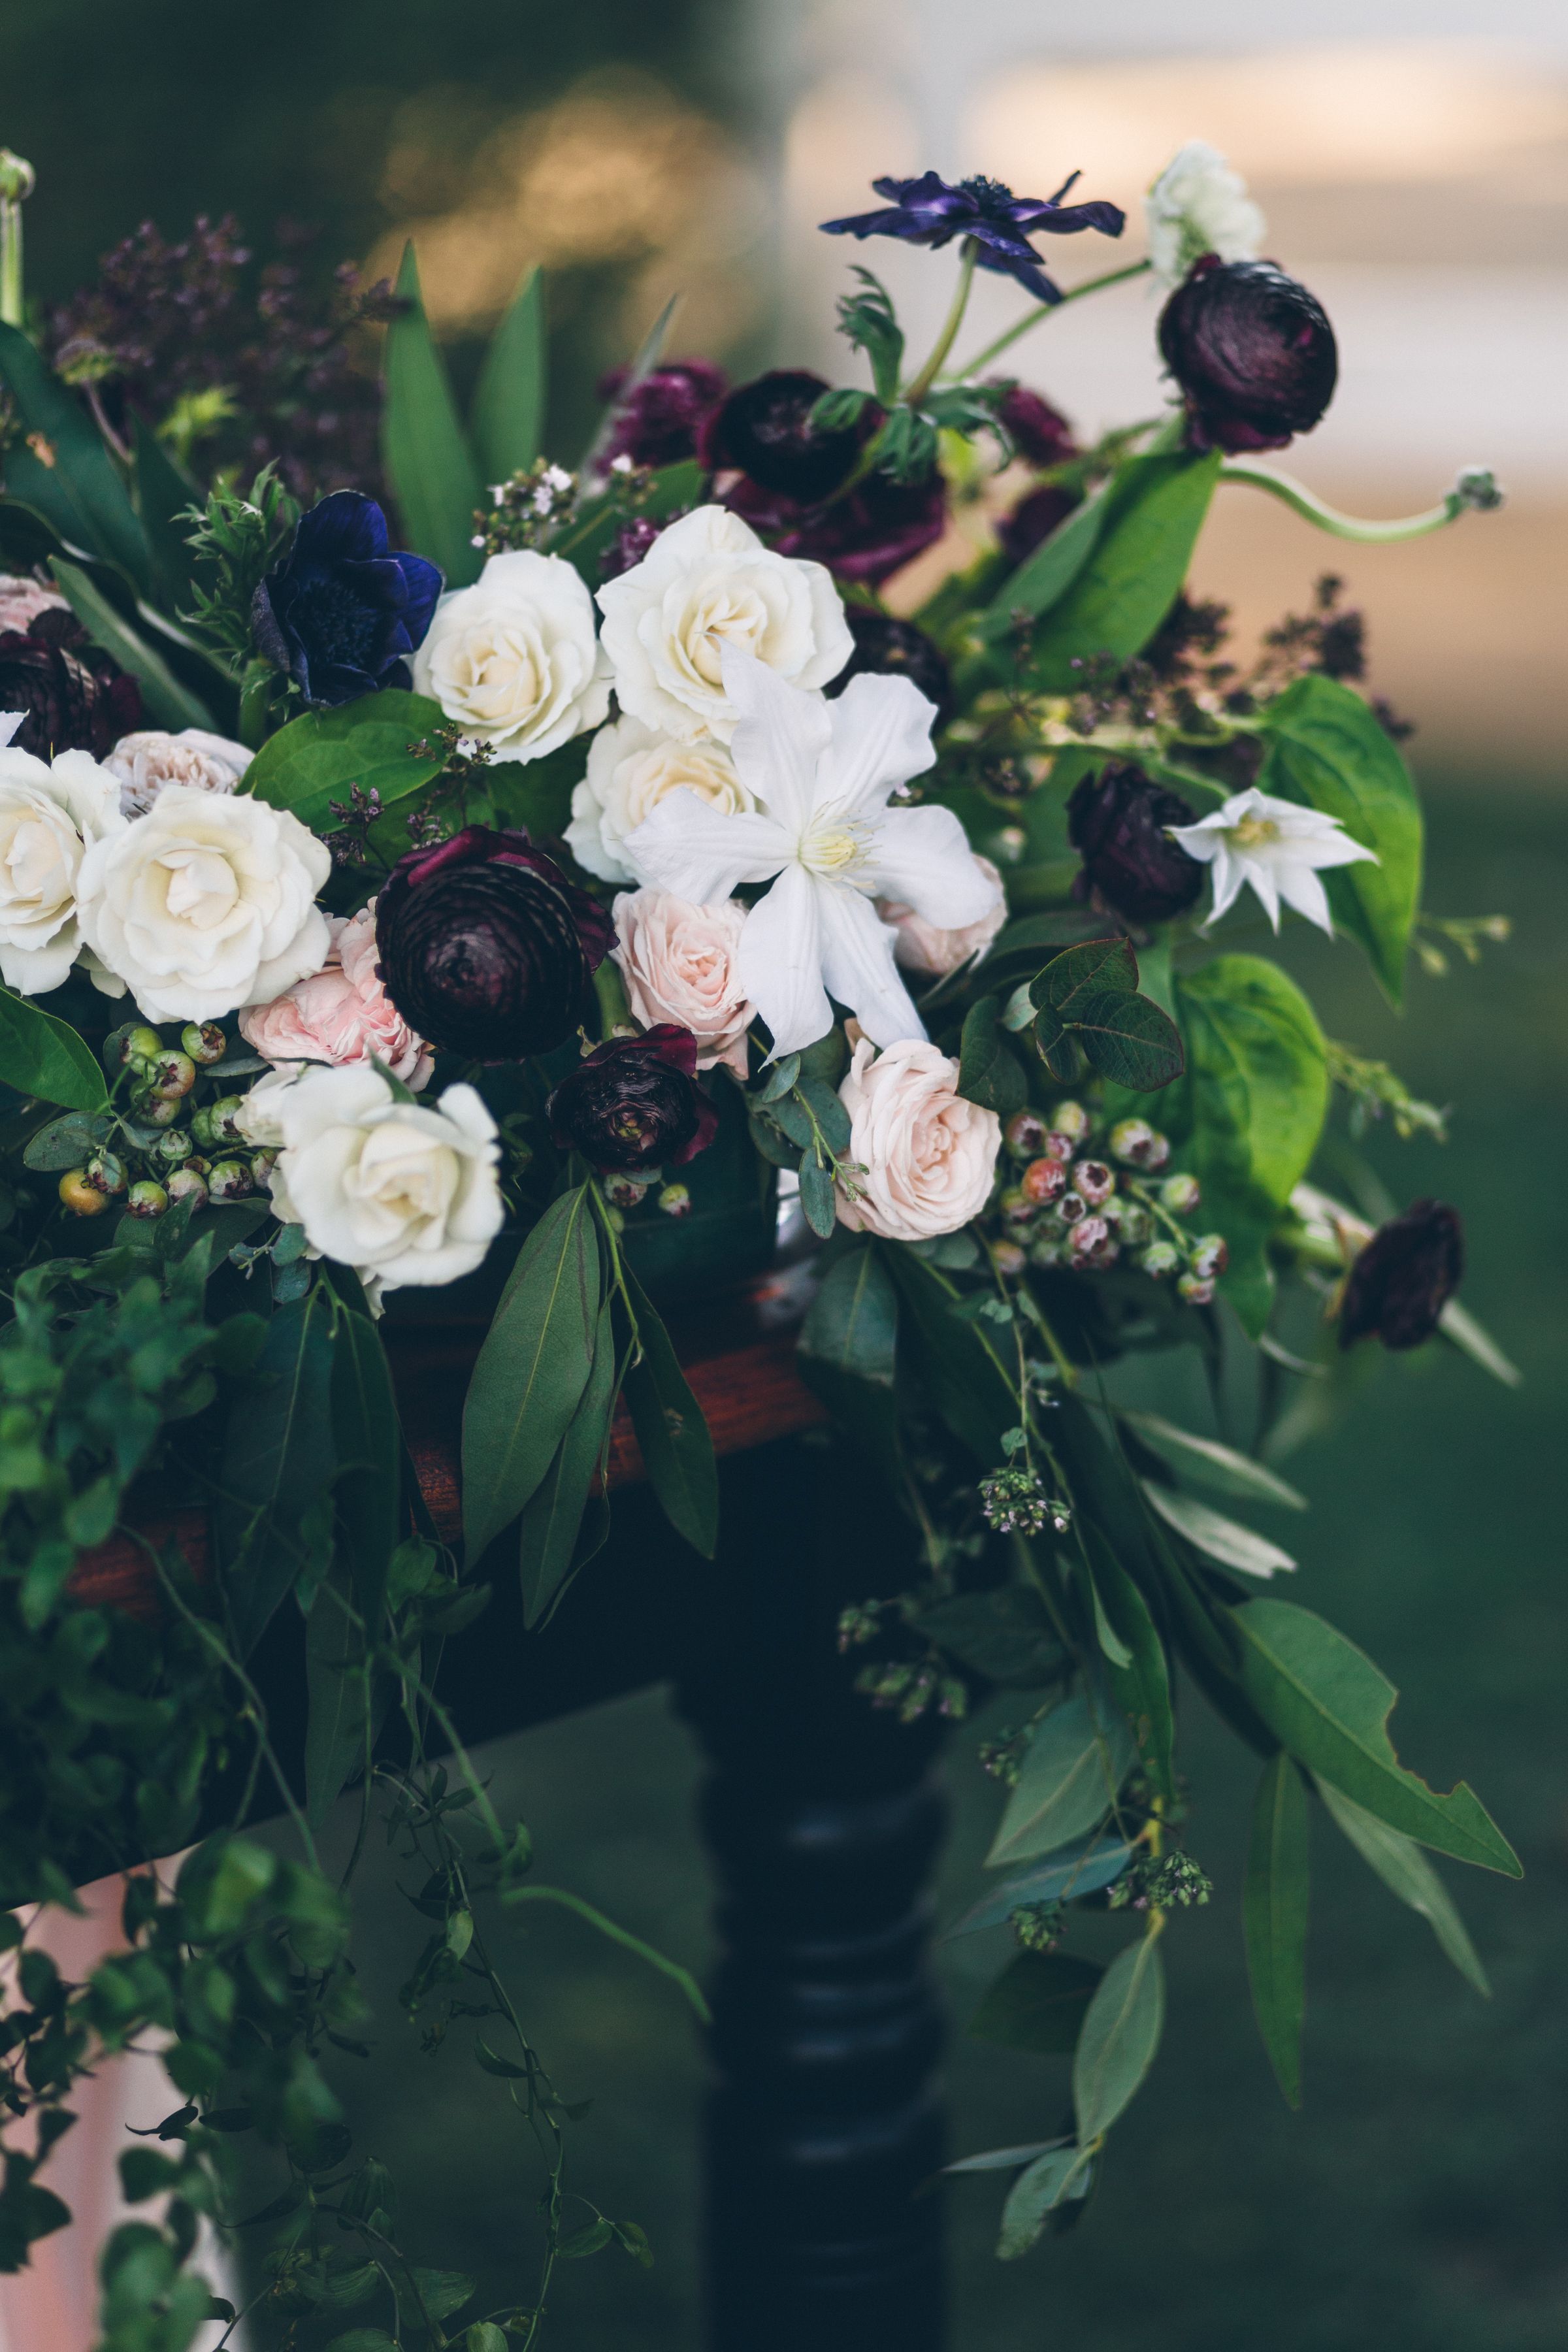 purple rannunculus blush roses and jasmine and white cosmos for an outdoor wedding at brookview ranch .jpg